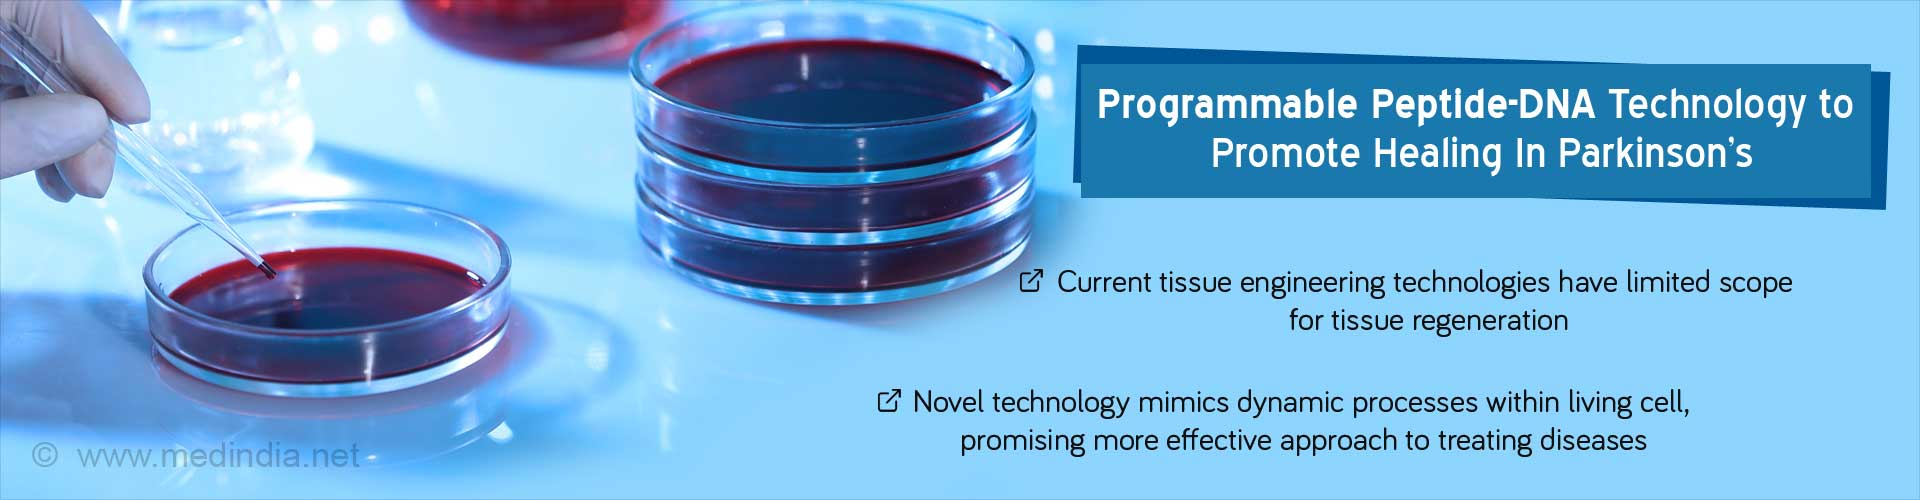 Programmable Peptide-DNA Technology to Promote Healing in Parkinson''s